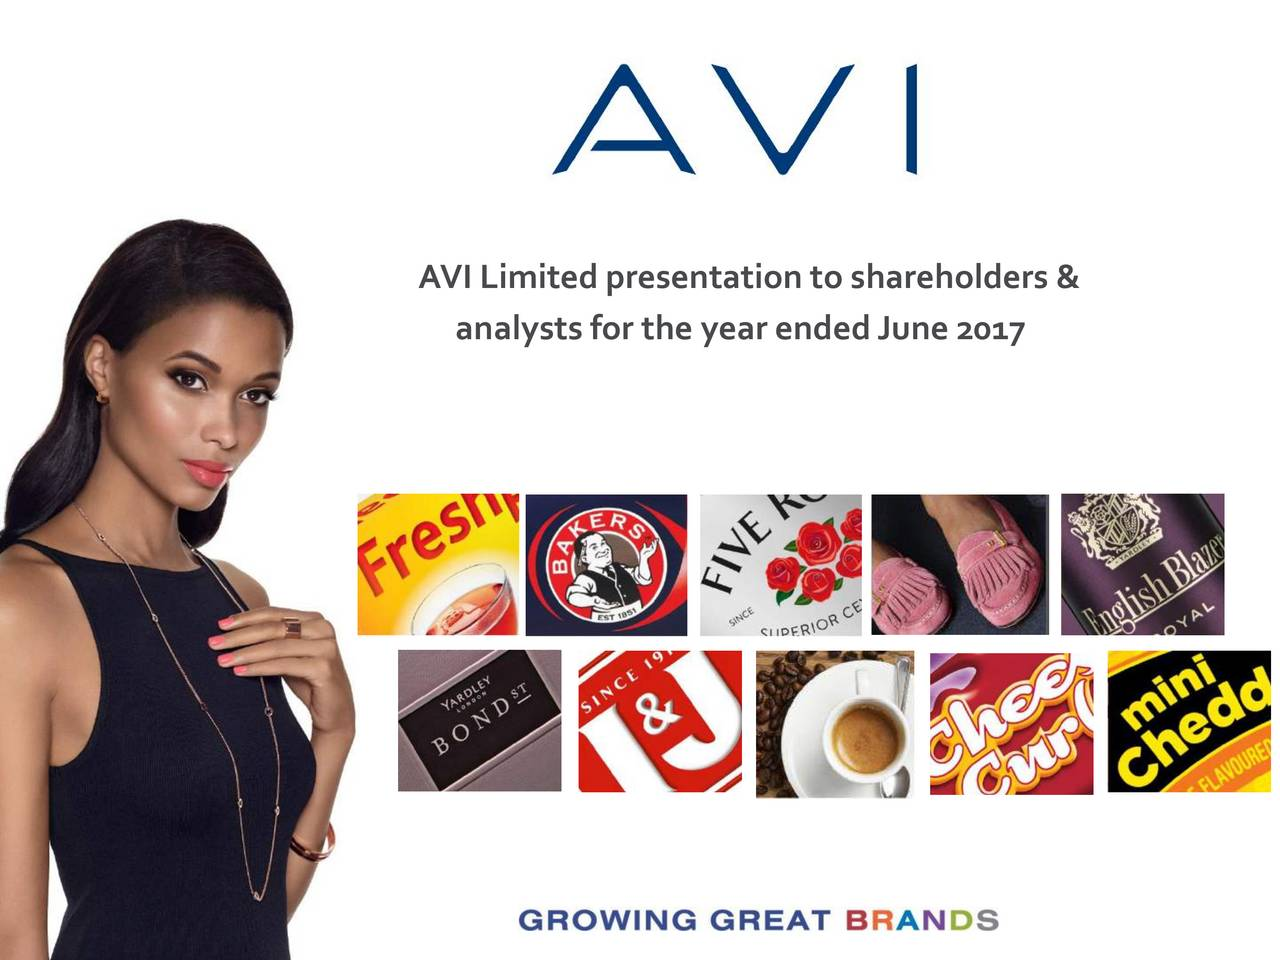 analystsfor the yearendedJune 2017